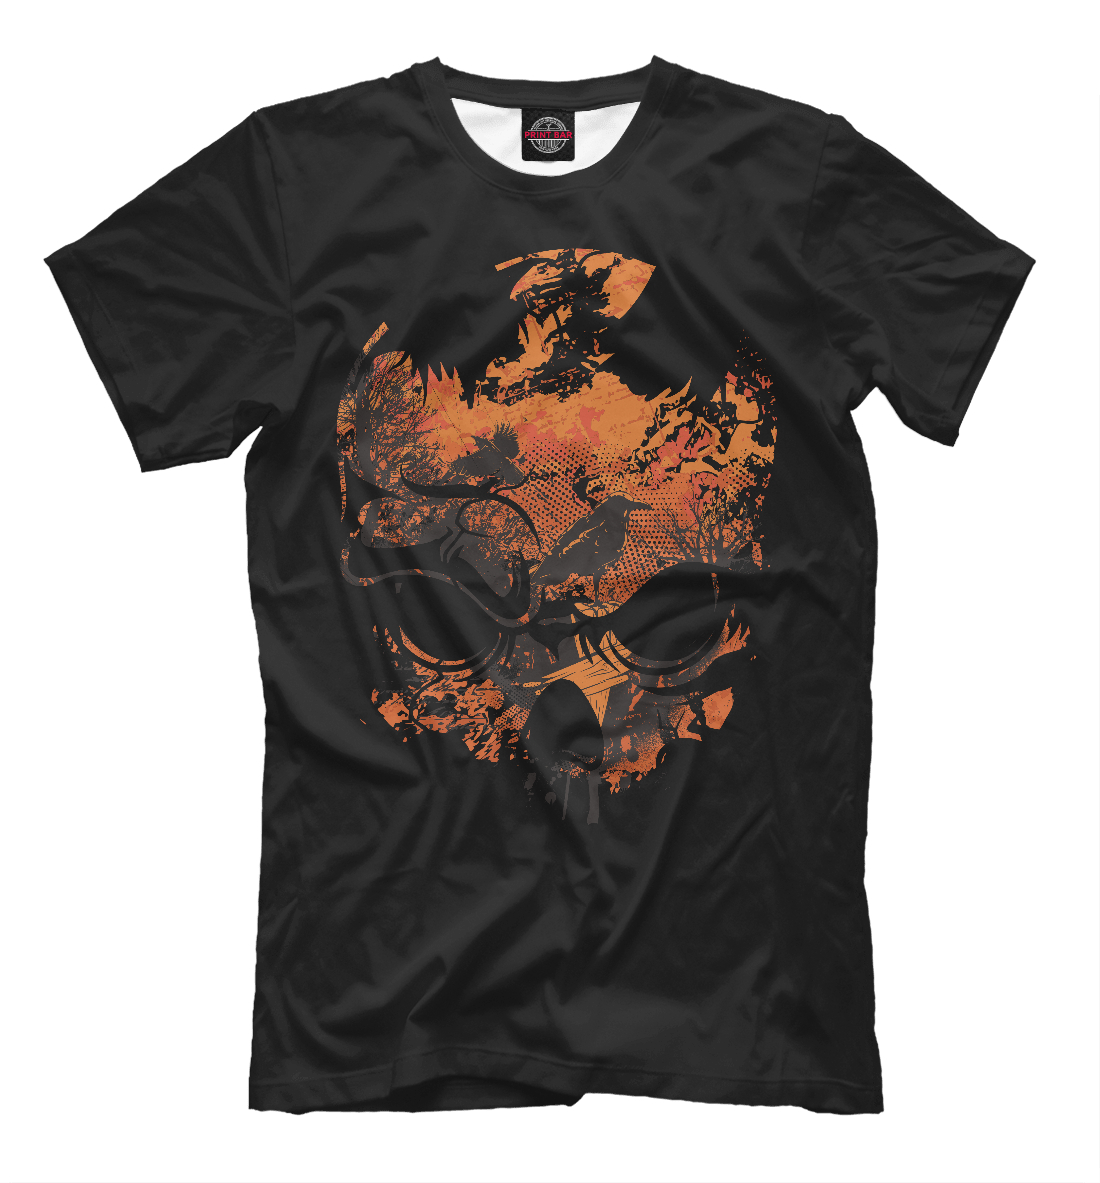 Купить Skull and Crow, Printbar, Футболки, SKU-409901-fut-2